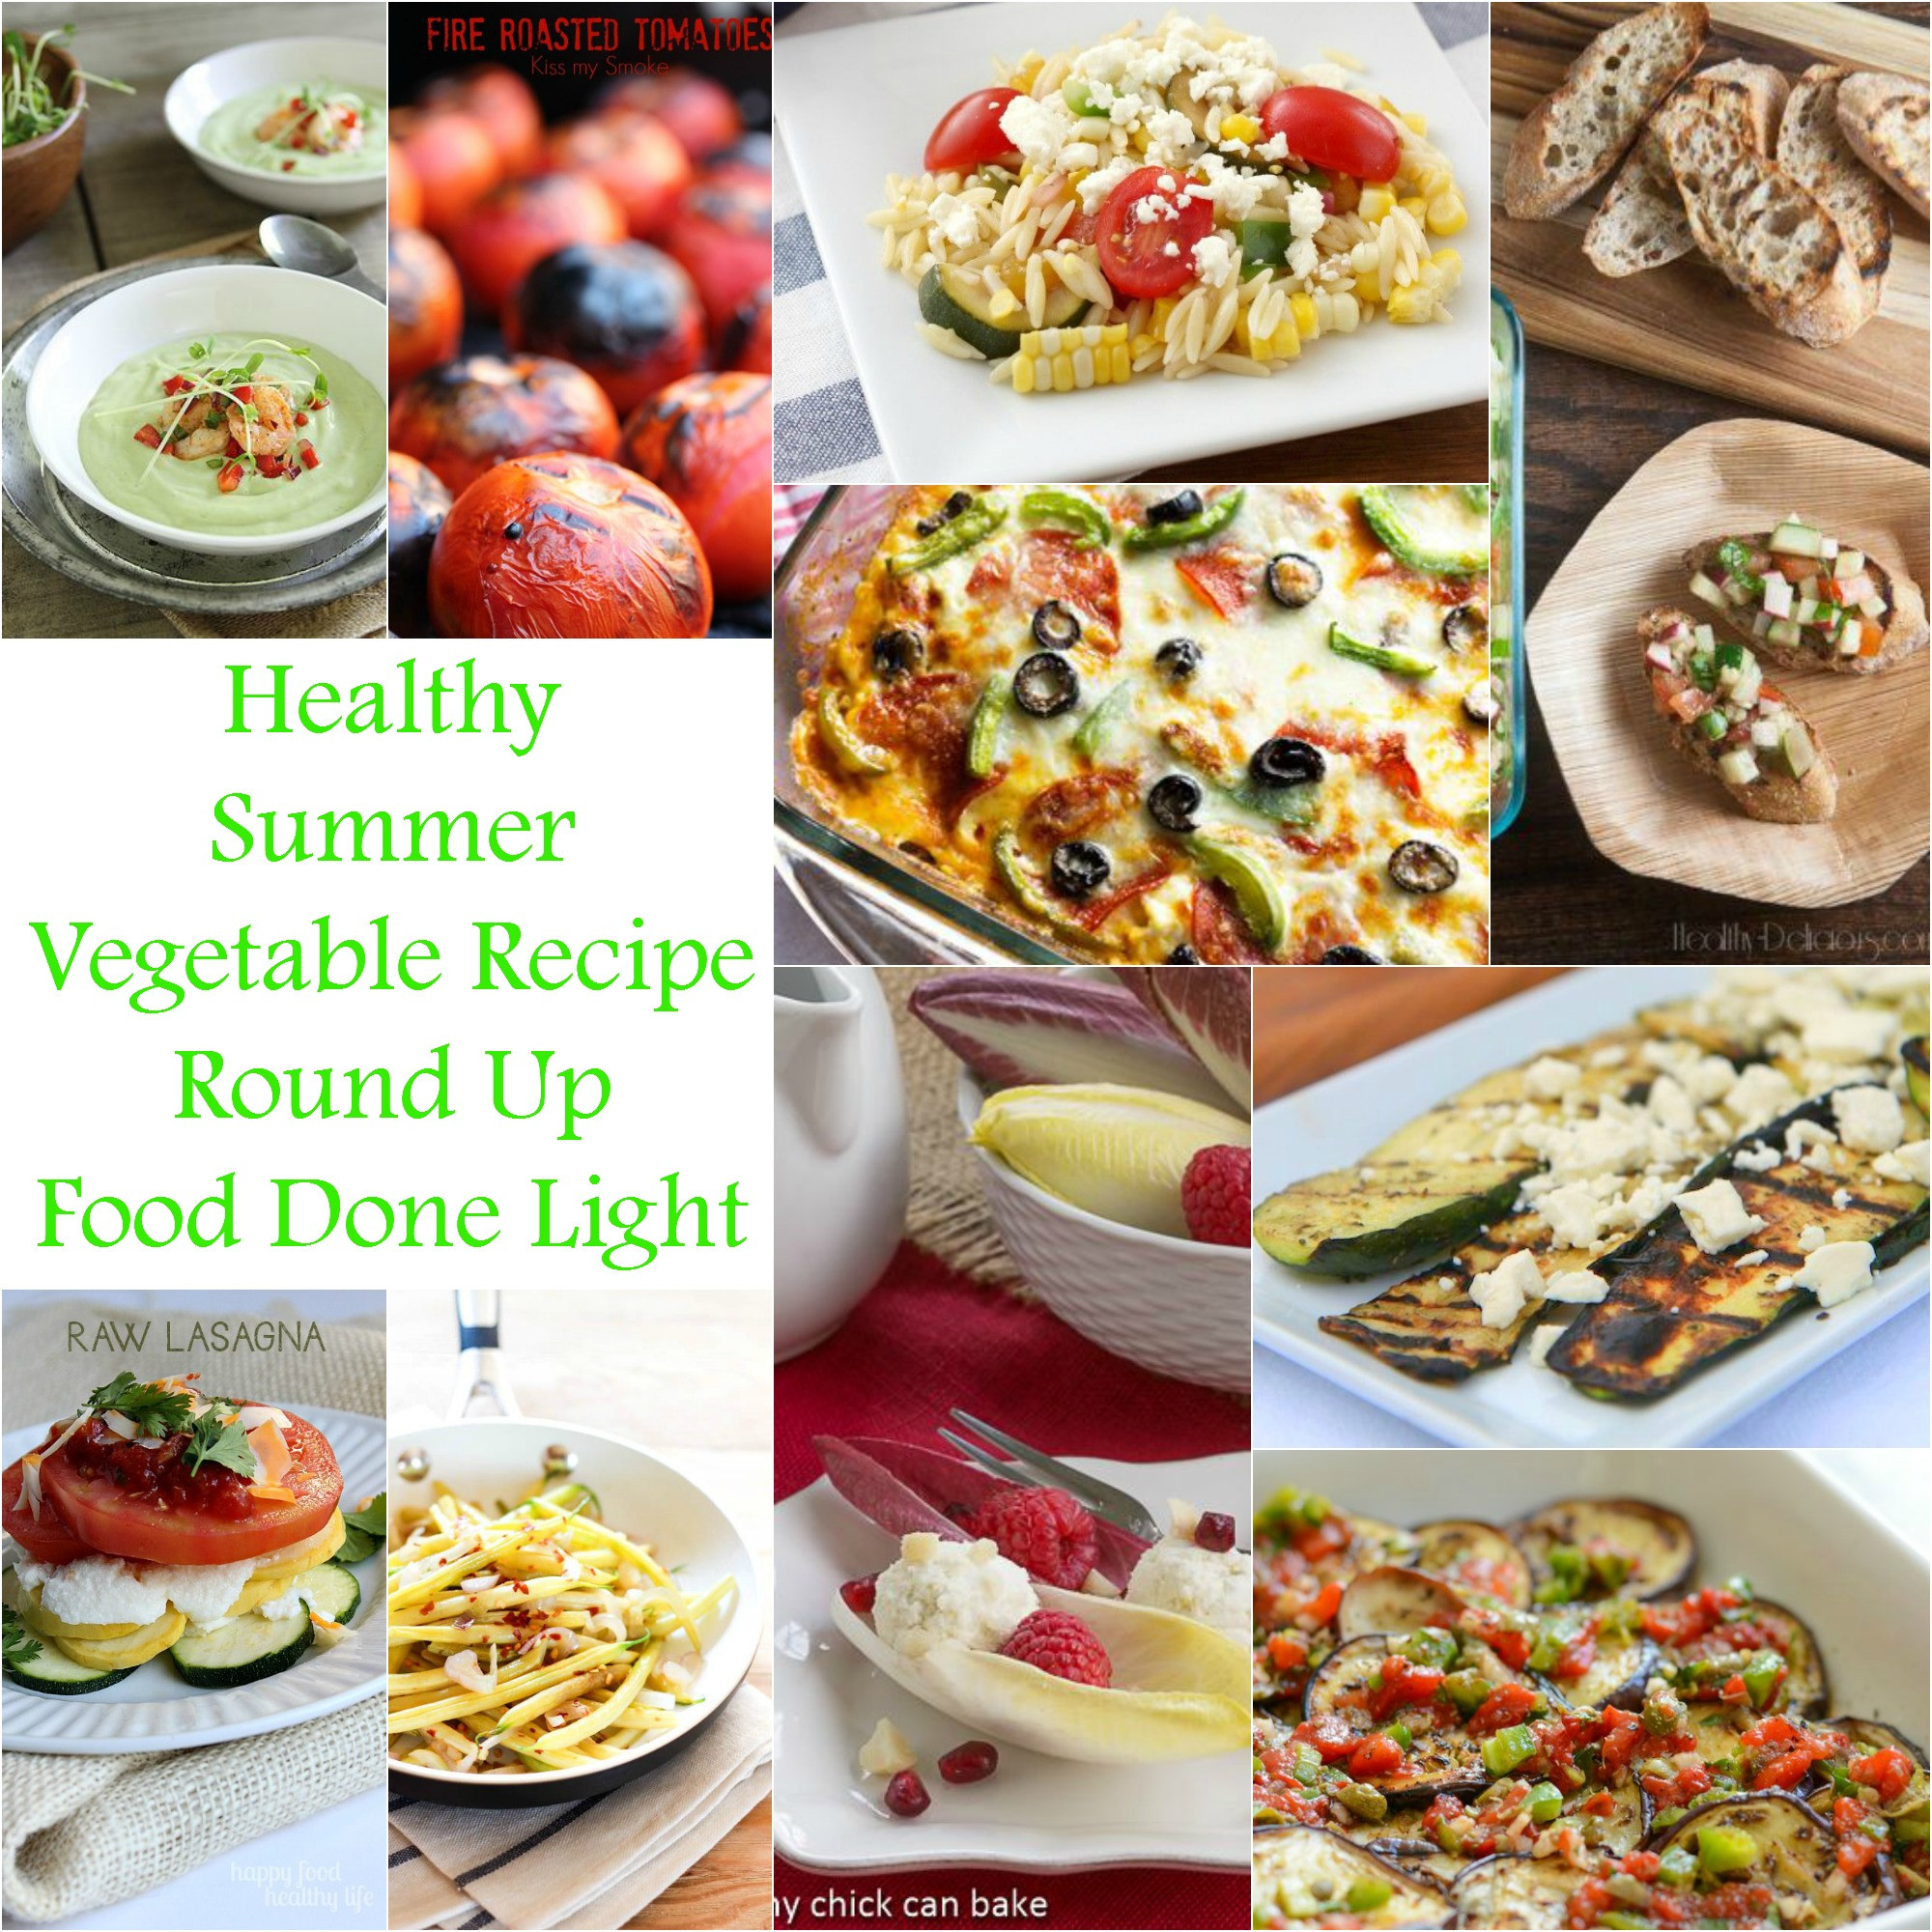 Healthy Summer Vegetarian Recipes  Healthy Summer Ve able Recipe Round Up Food Done Light